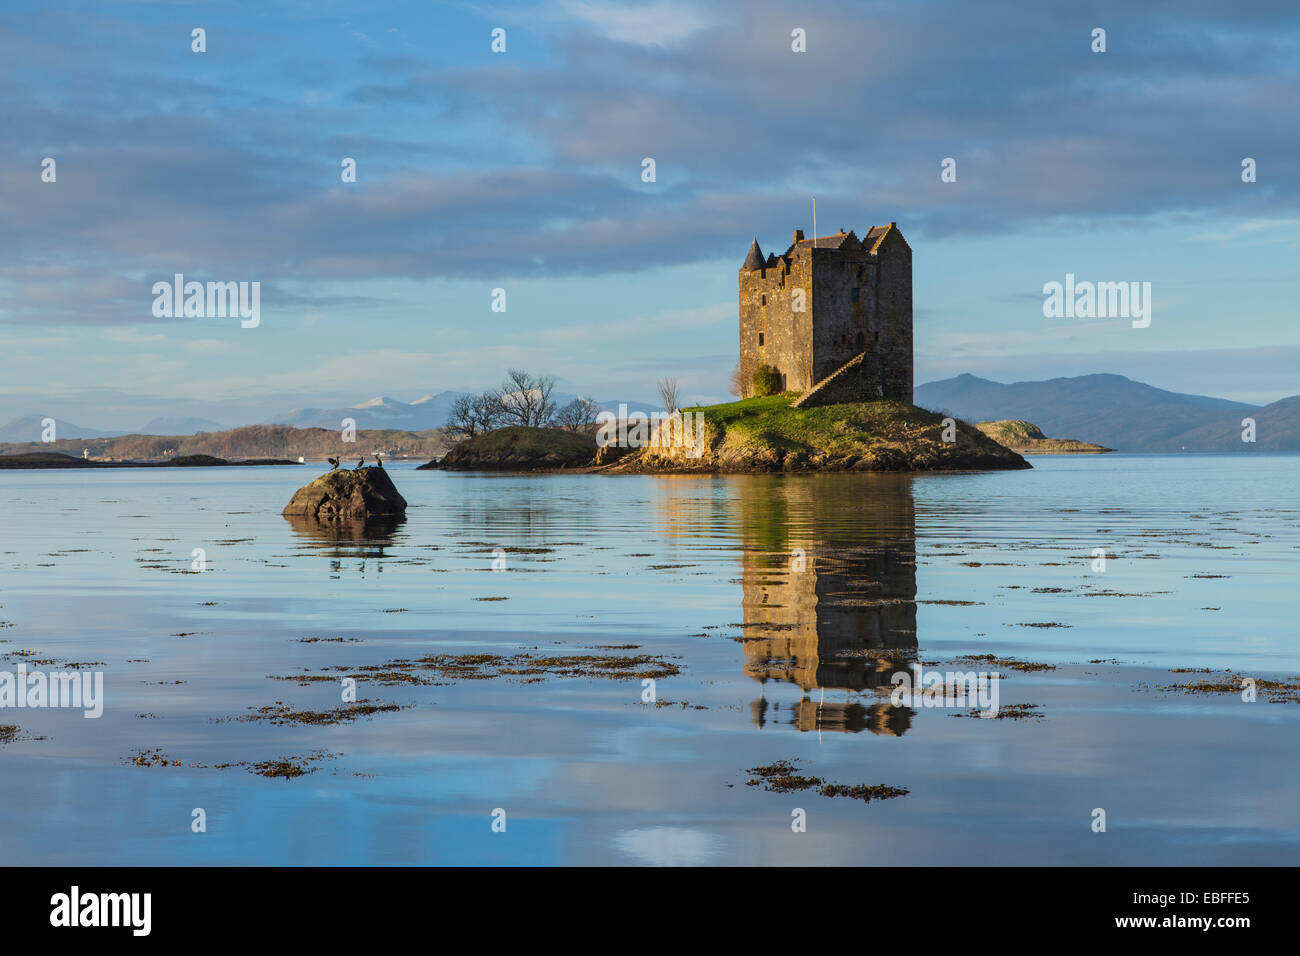 Castle Stalker at sunrise in winter. A castle surrounded by water on the west coast of Scotland - Stock Image